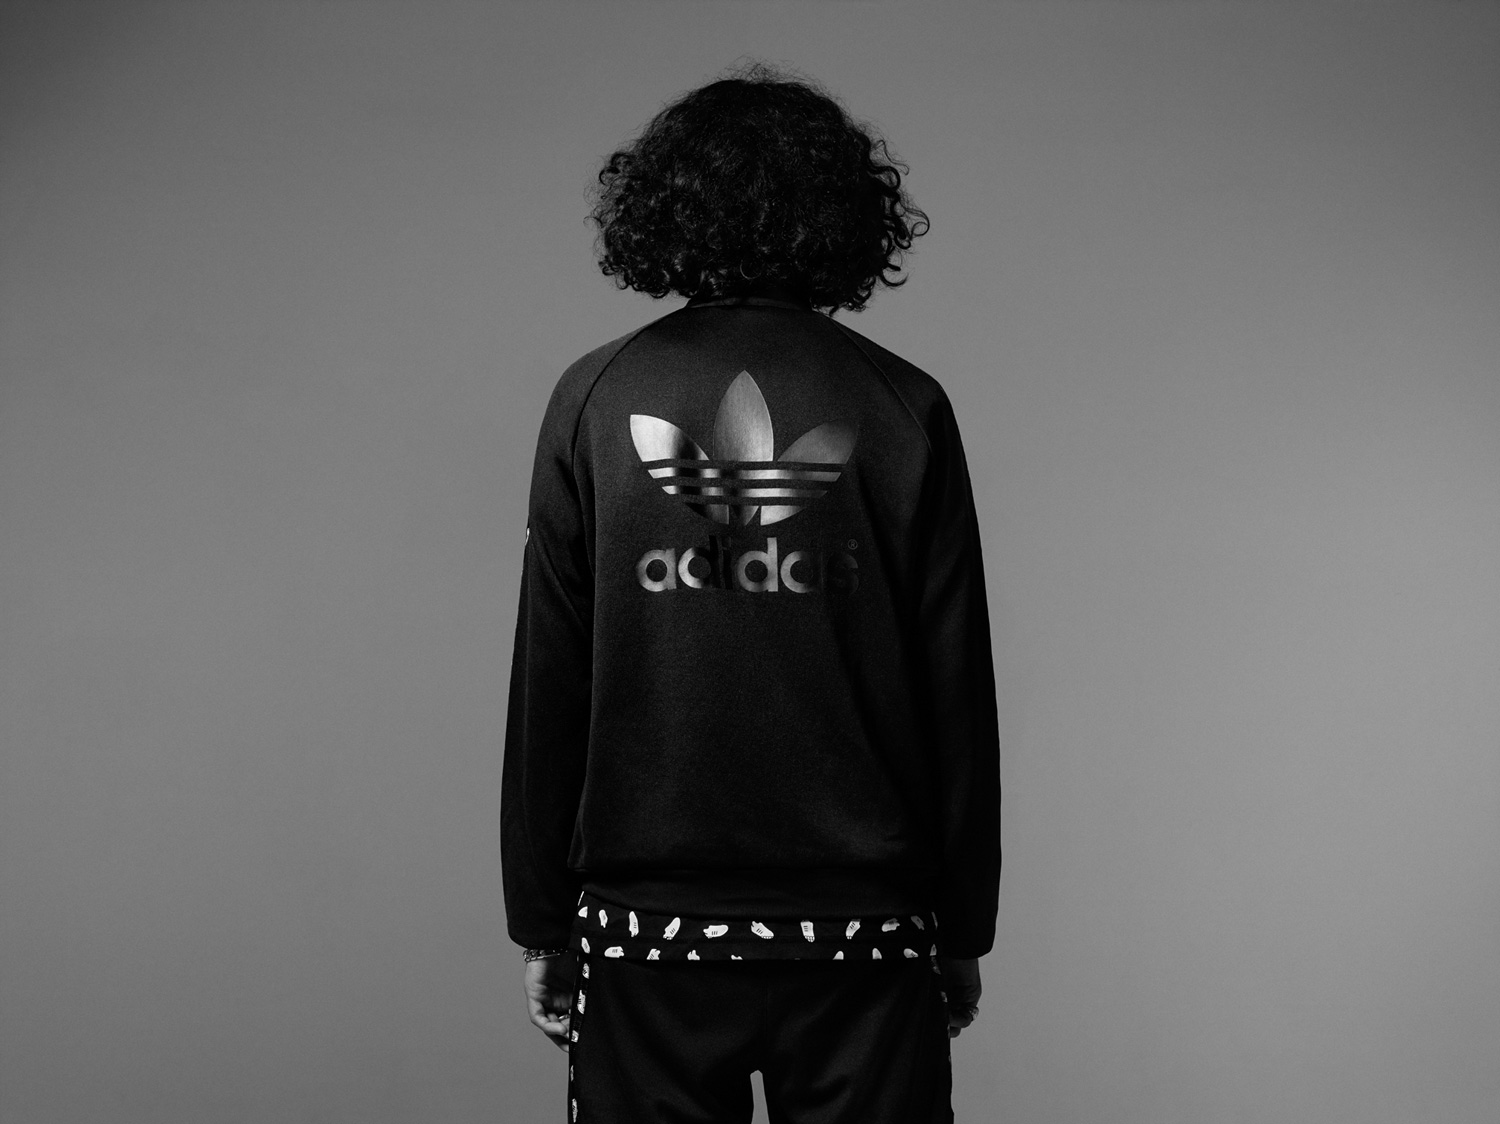 adidas-originals-shelltoe-apparel-capsule-collection-06